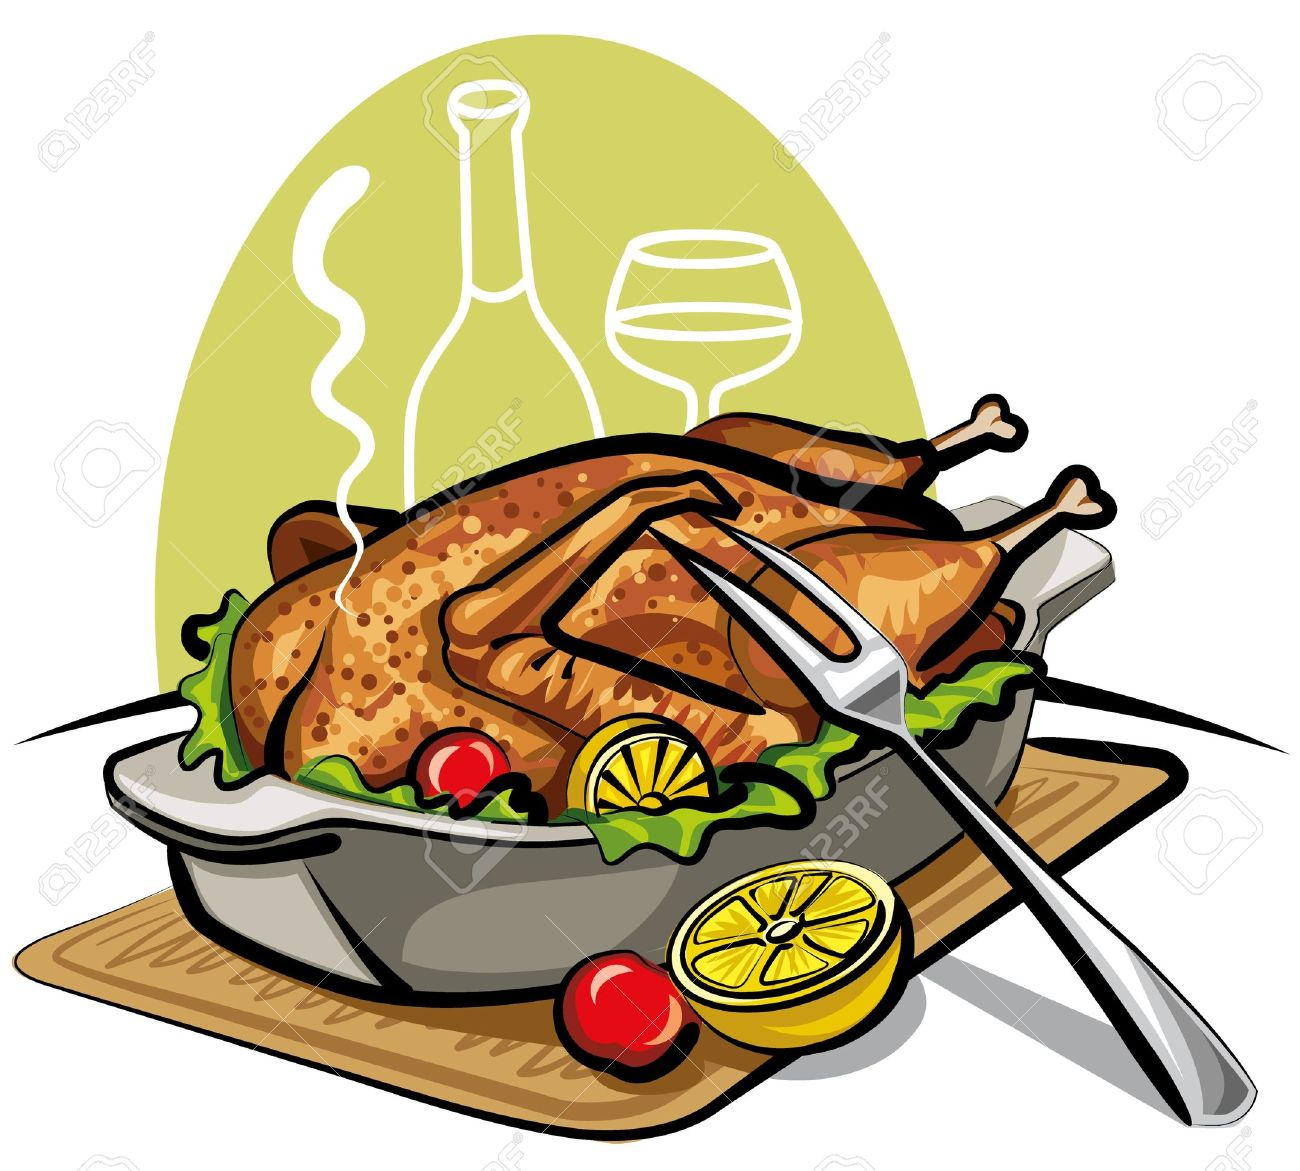 Roasted Chicken Clipart - More information